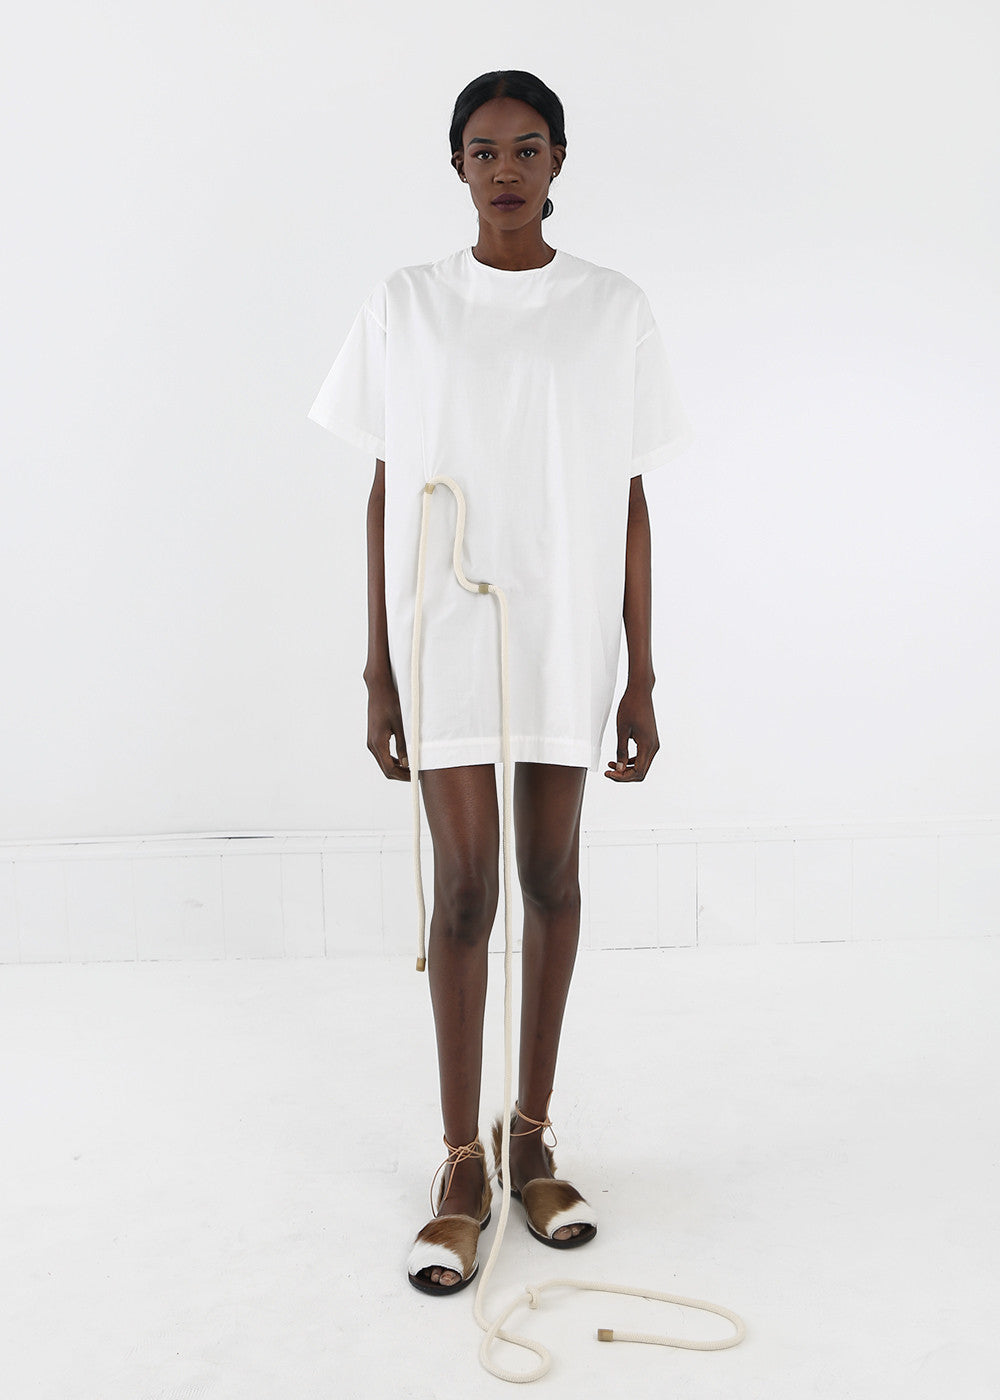 Delfina Balda White Paradiso Tunic Tee — Shop sustainable fashion and slow fashion at New Classics Studios